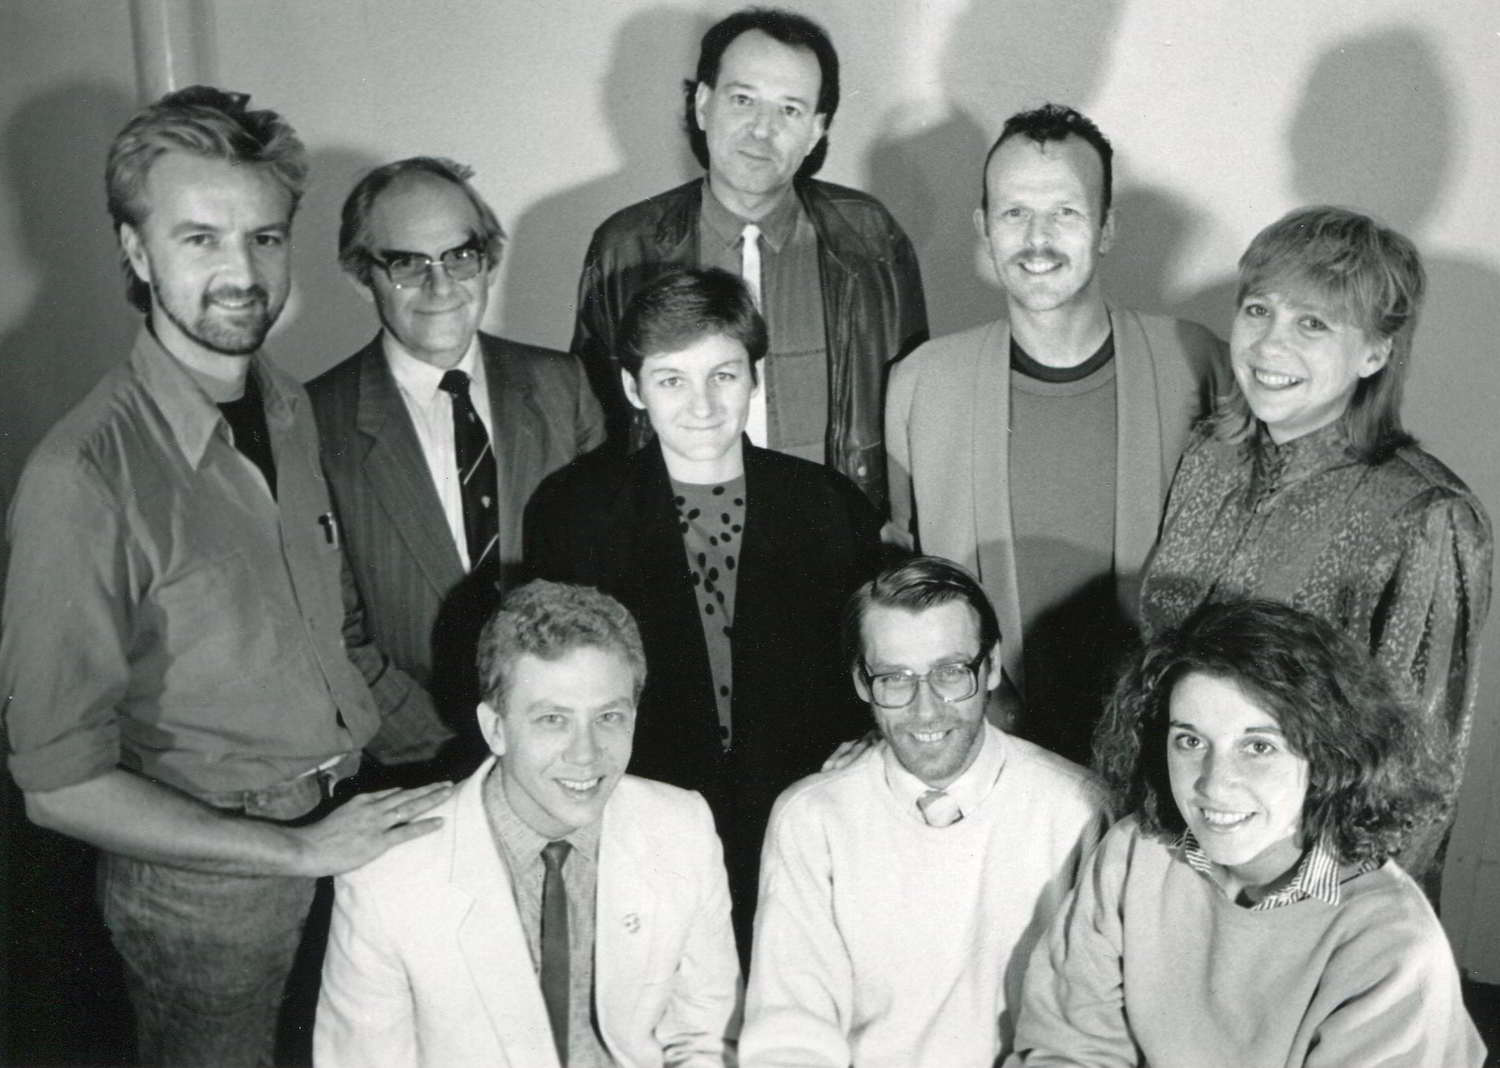 Handspan Theatre Board 1987 portrait of people in a group